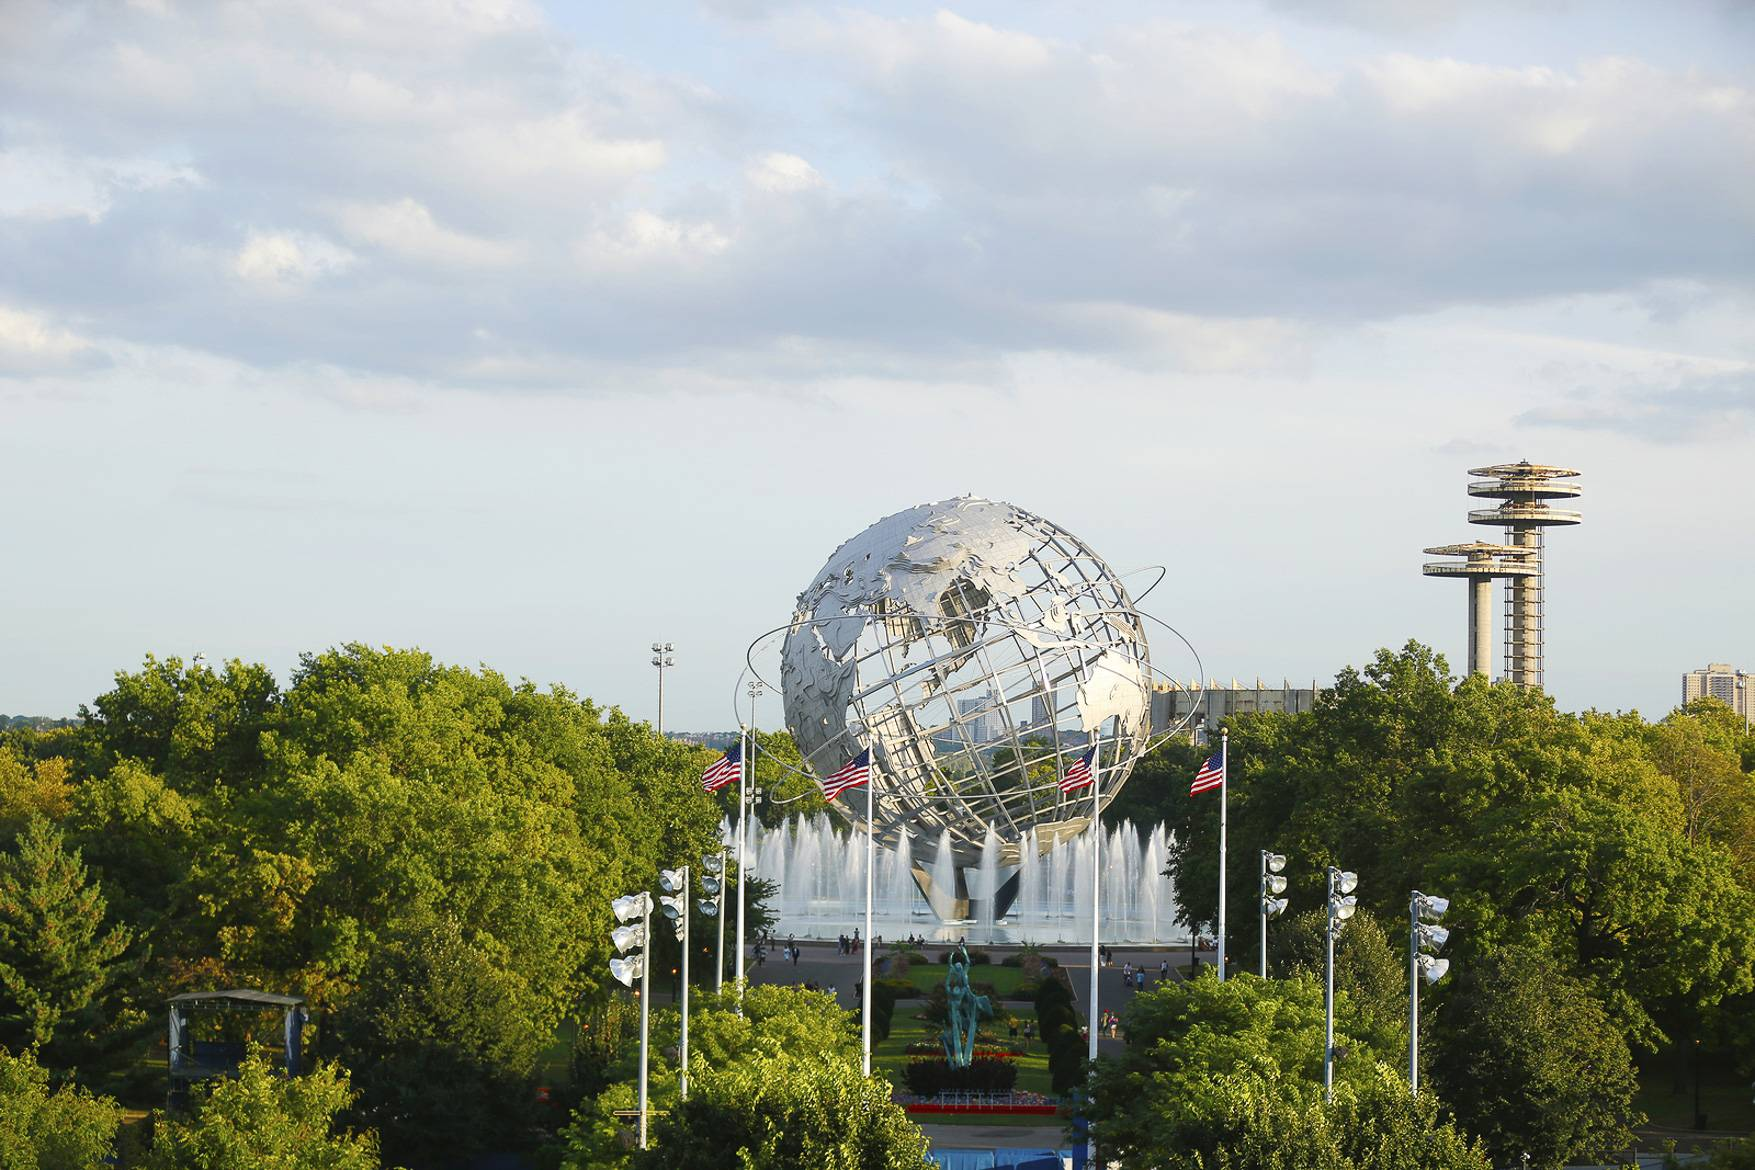 Image of the Unisphere at the World's Fair site in Flushing, Queens